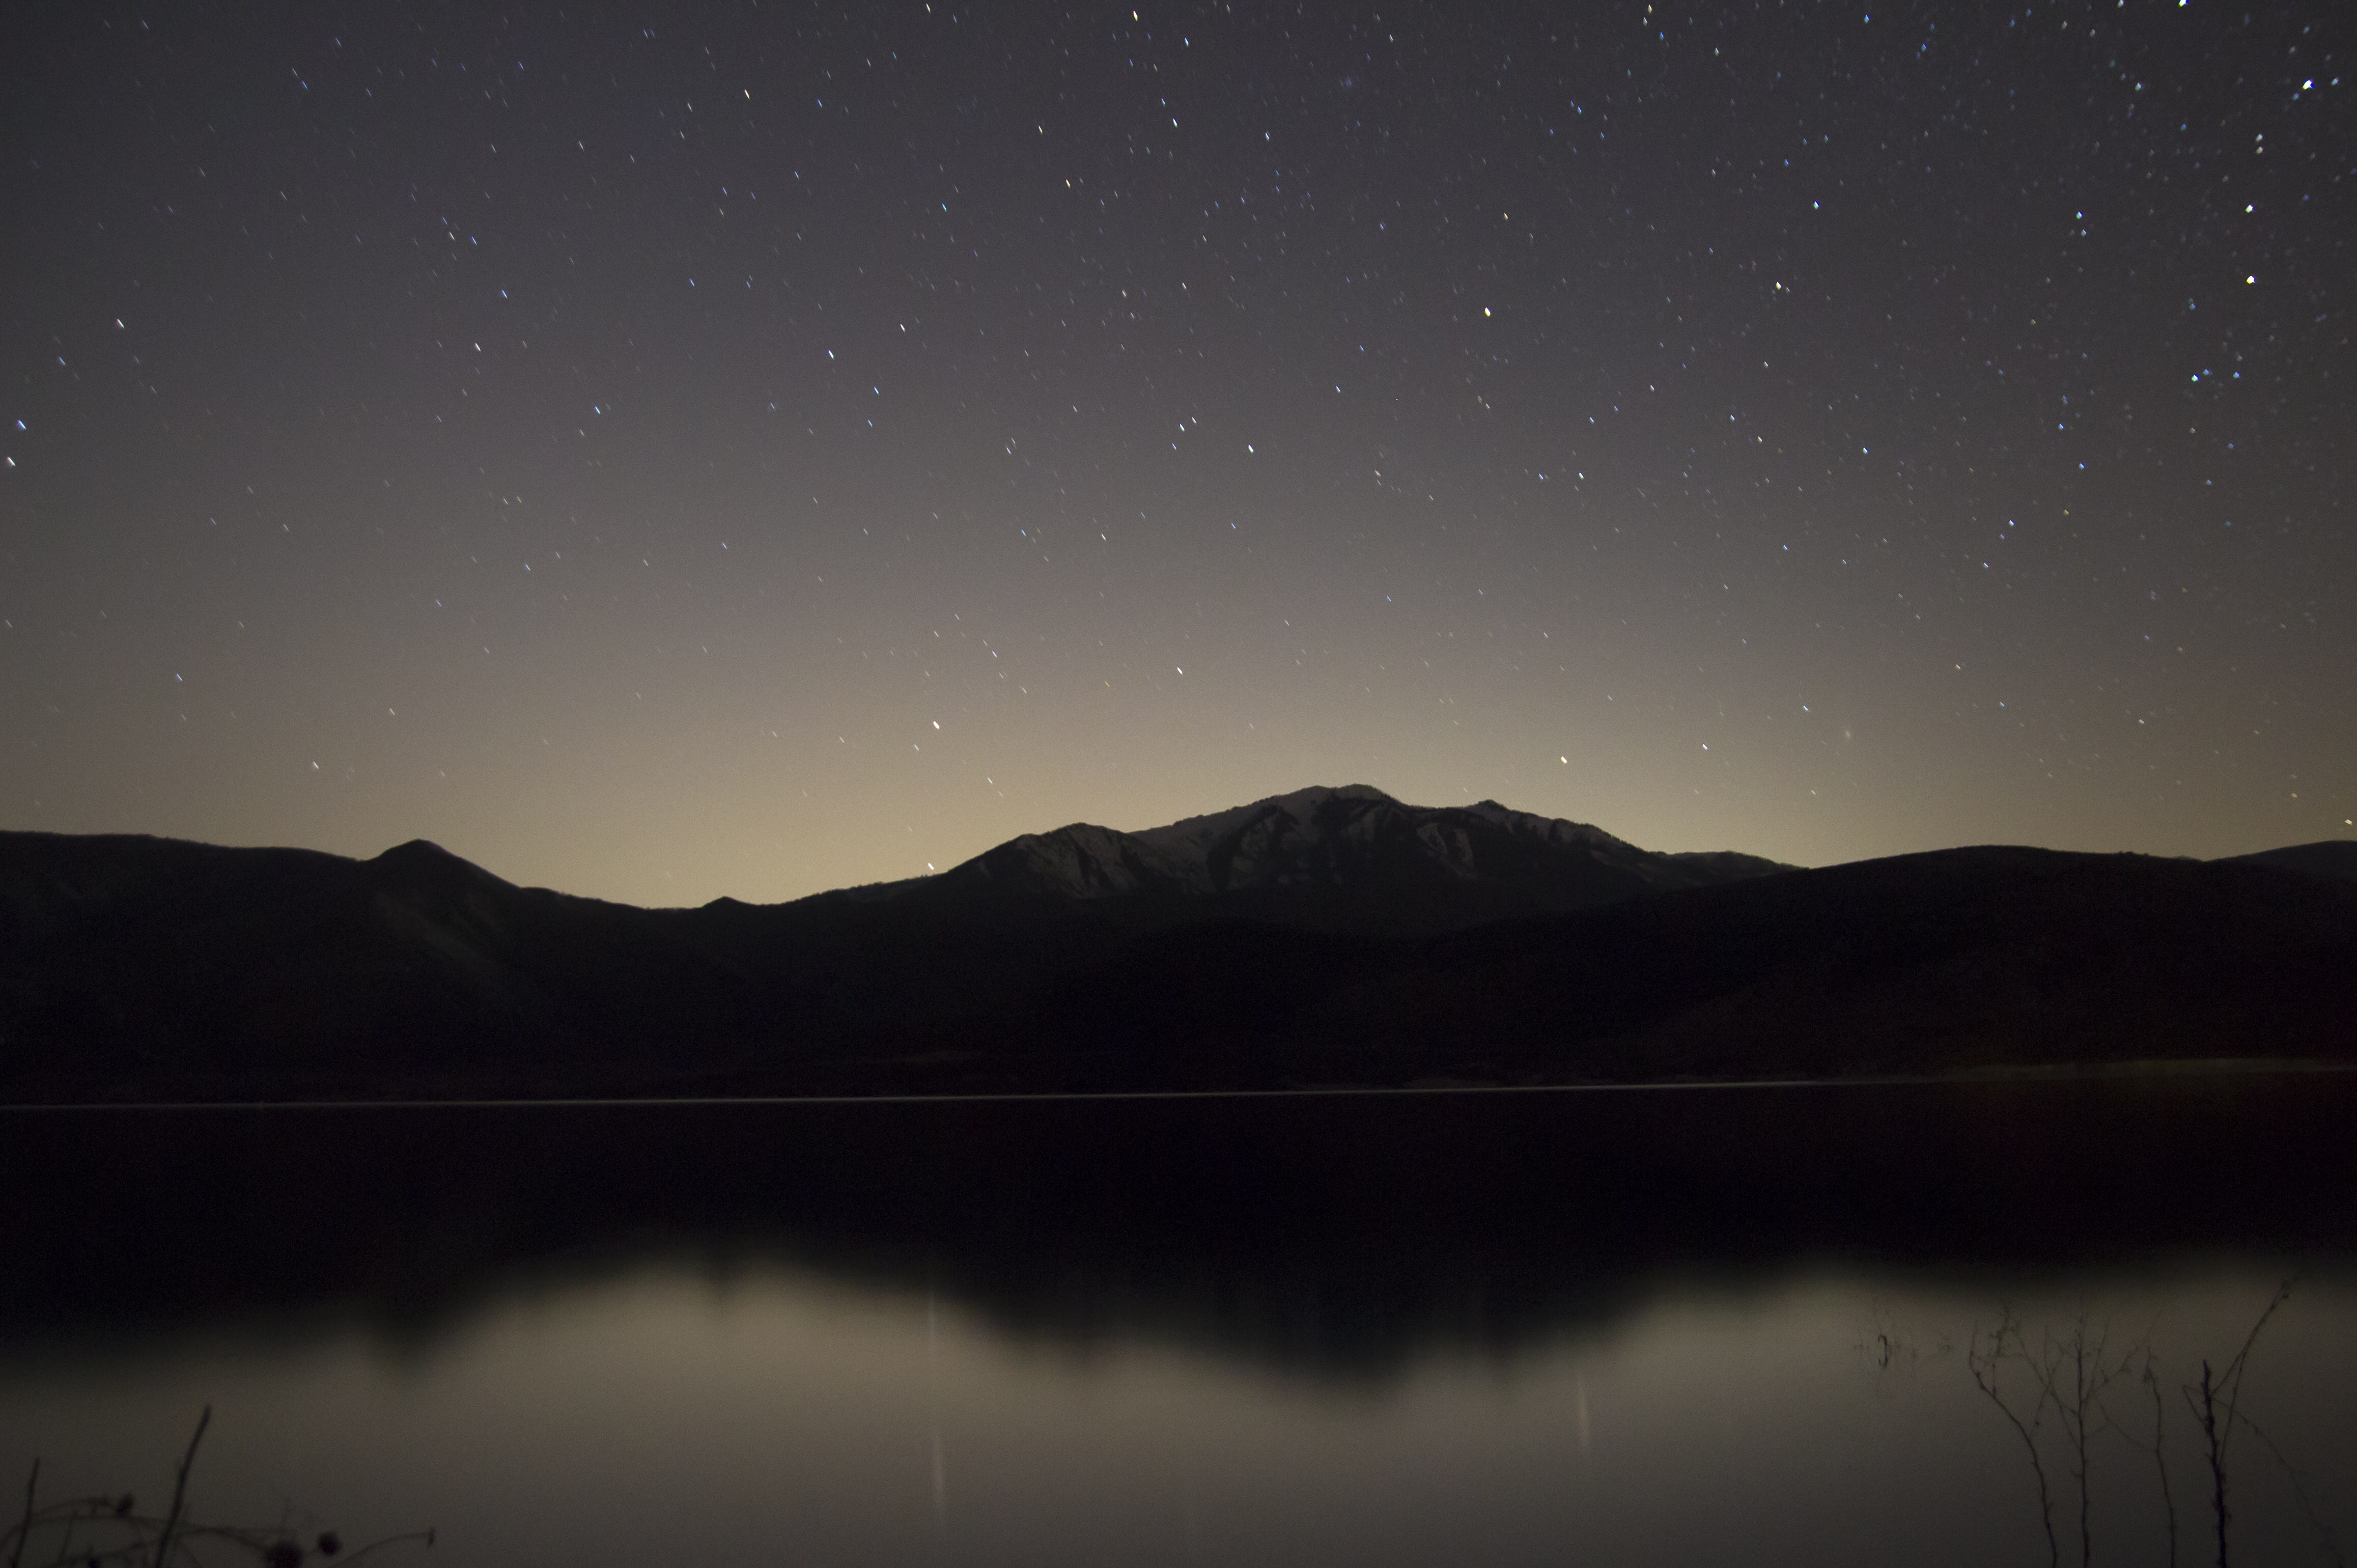 Peace Hd Wallpapers Free Download Picalls Com Lake And Mountains At Night By Daniel Bowman